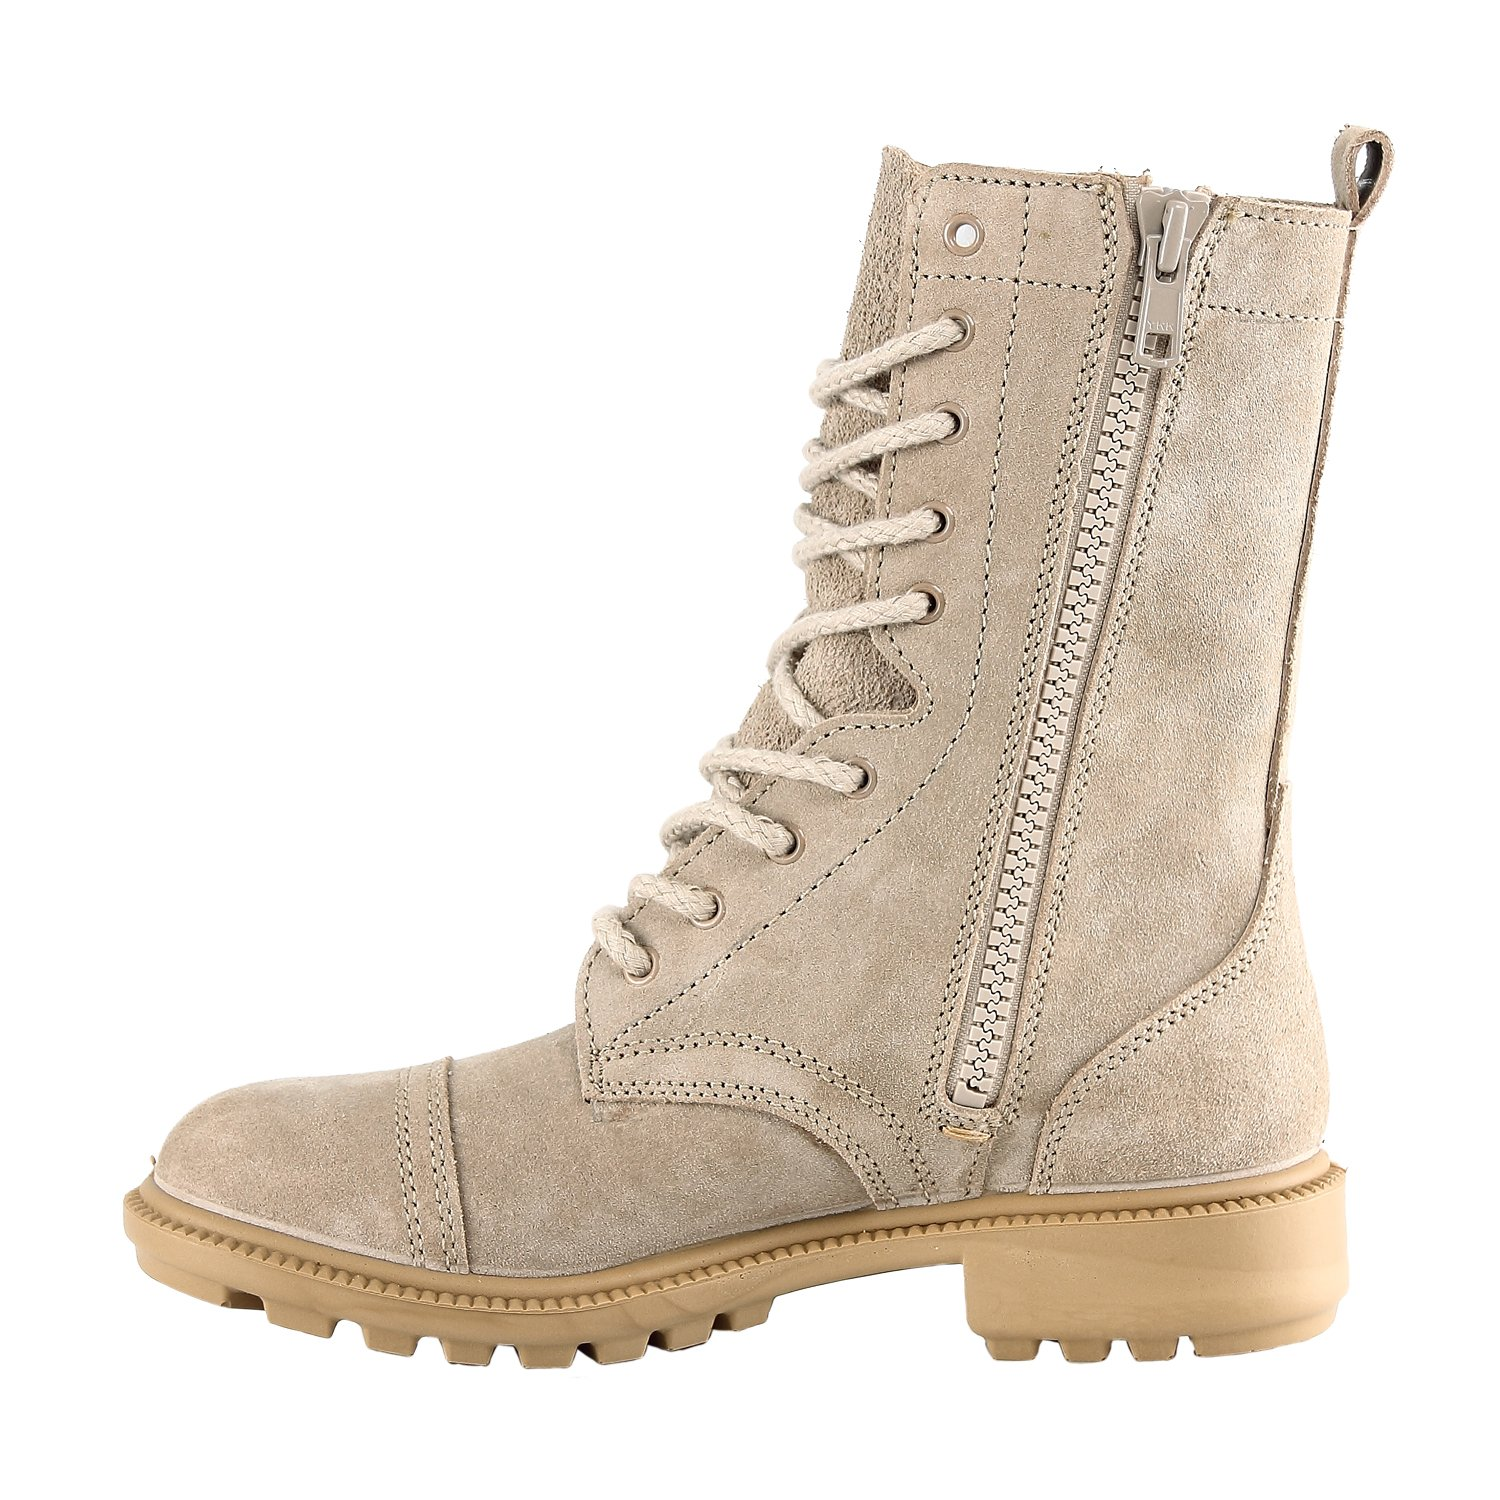 | Unisex High Lace Up Military Jungle Style BURGAN 832 Desert Combat Boot Water Resistant Tactical Commando SWAT Training Shoes Mid-Calf Suede Full Leather for Men and Woman Side Zipper